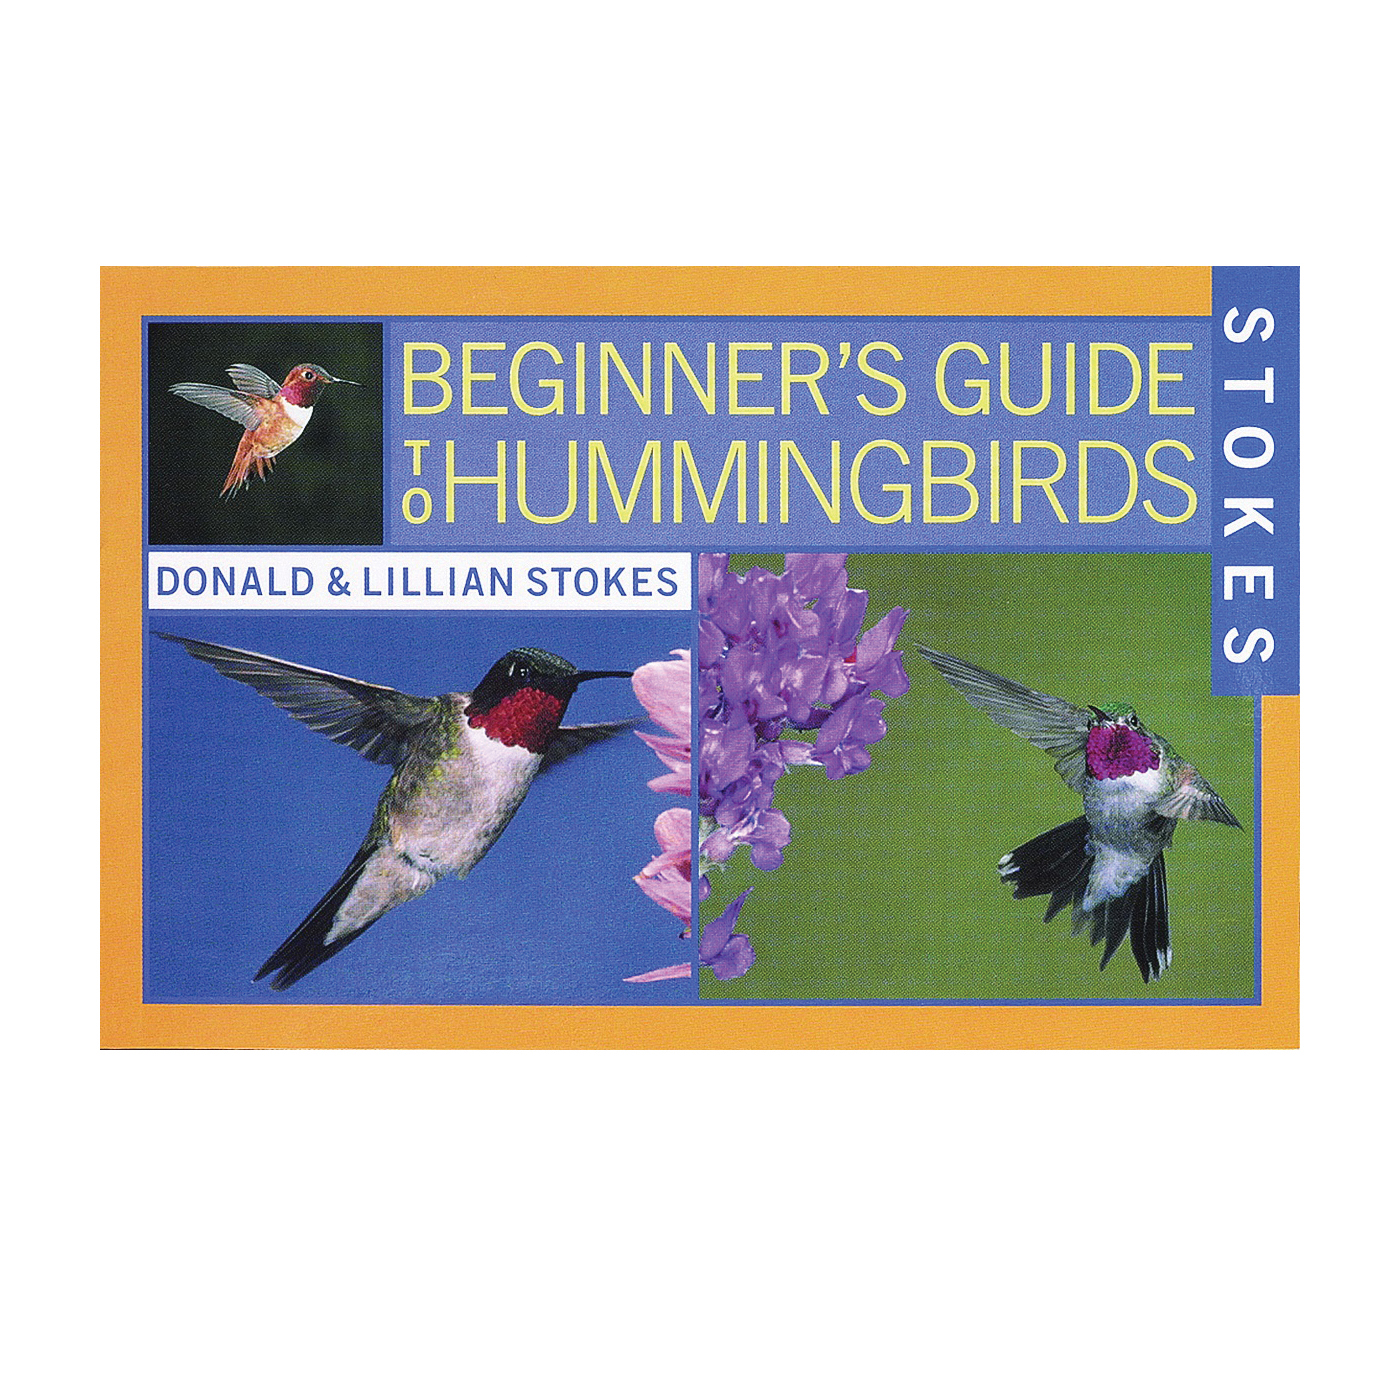 Picture of Stokes Select 38061 Bird Book, Beginner's Guide To Hummingbirds, Author: Donald, Lillian Stokes, 144-Page